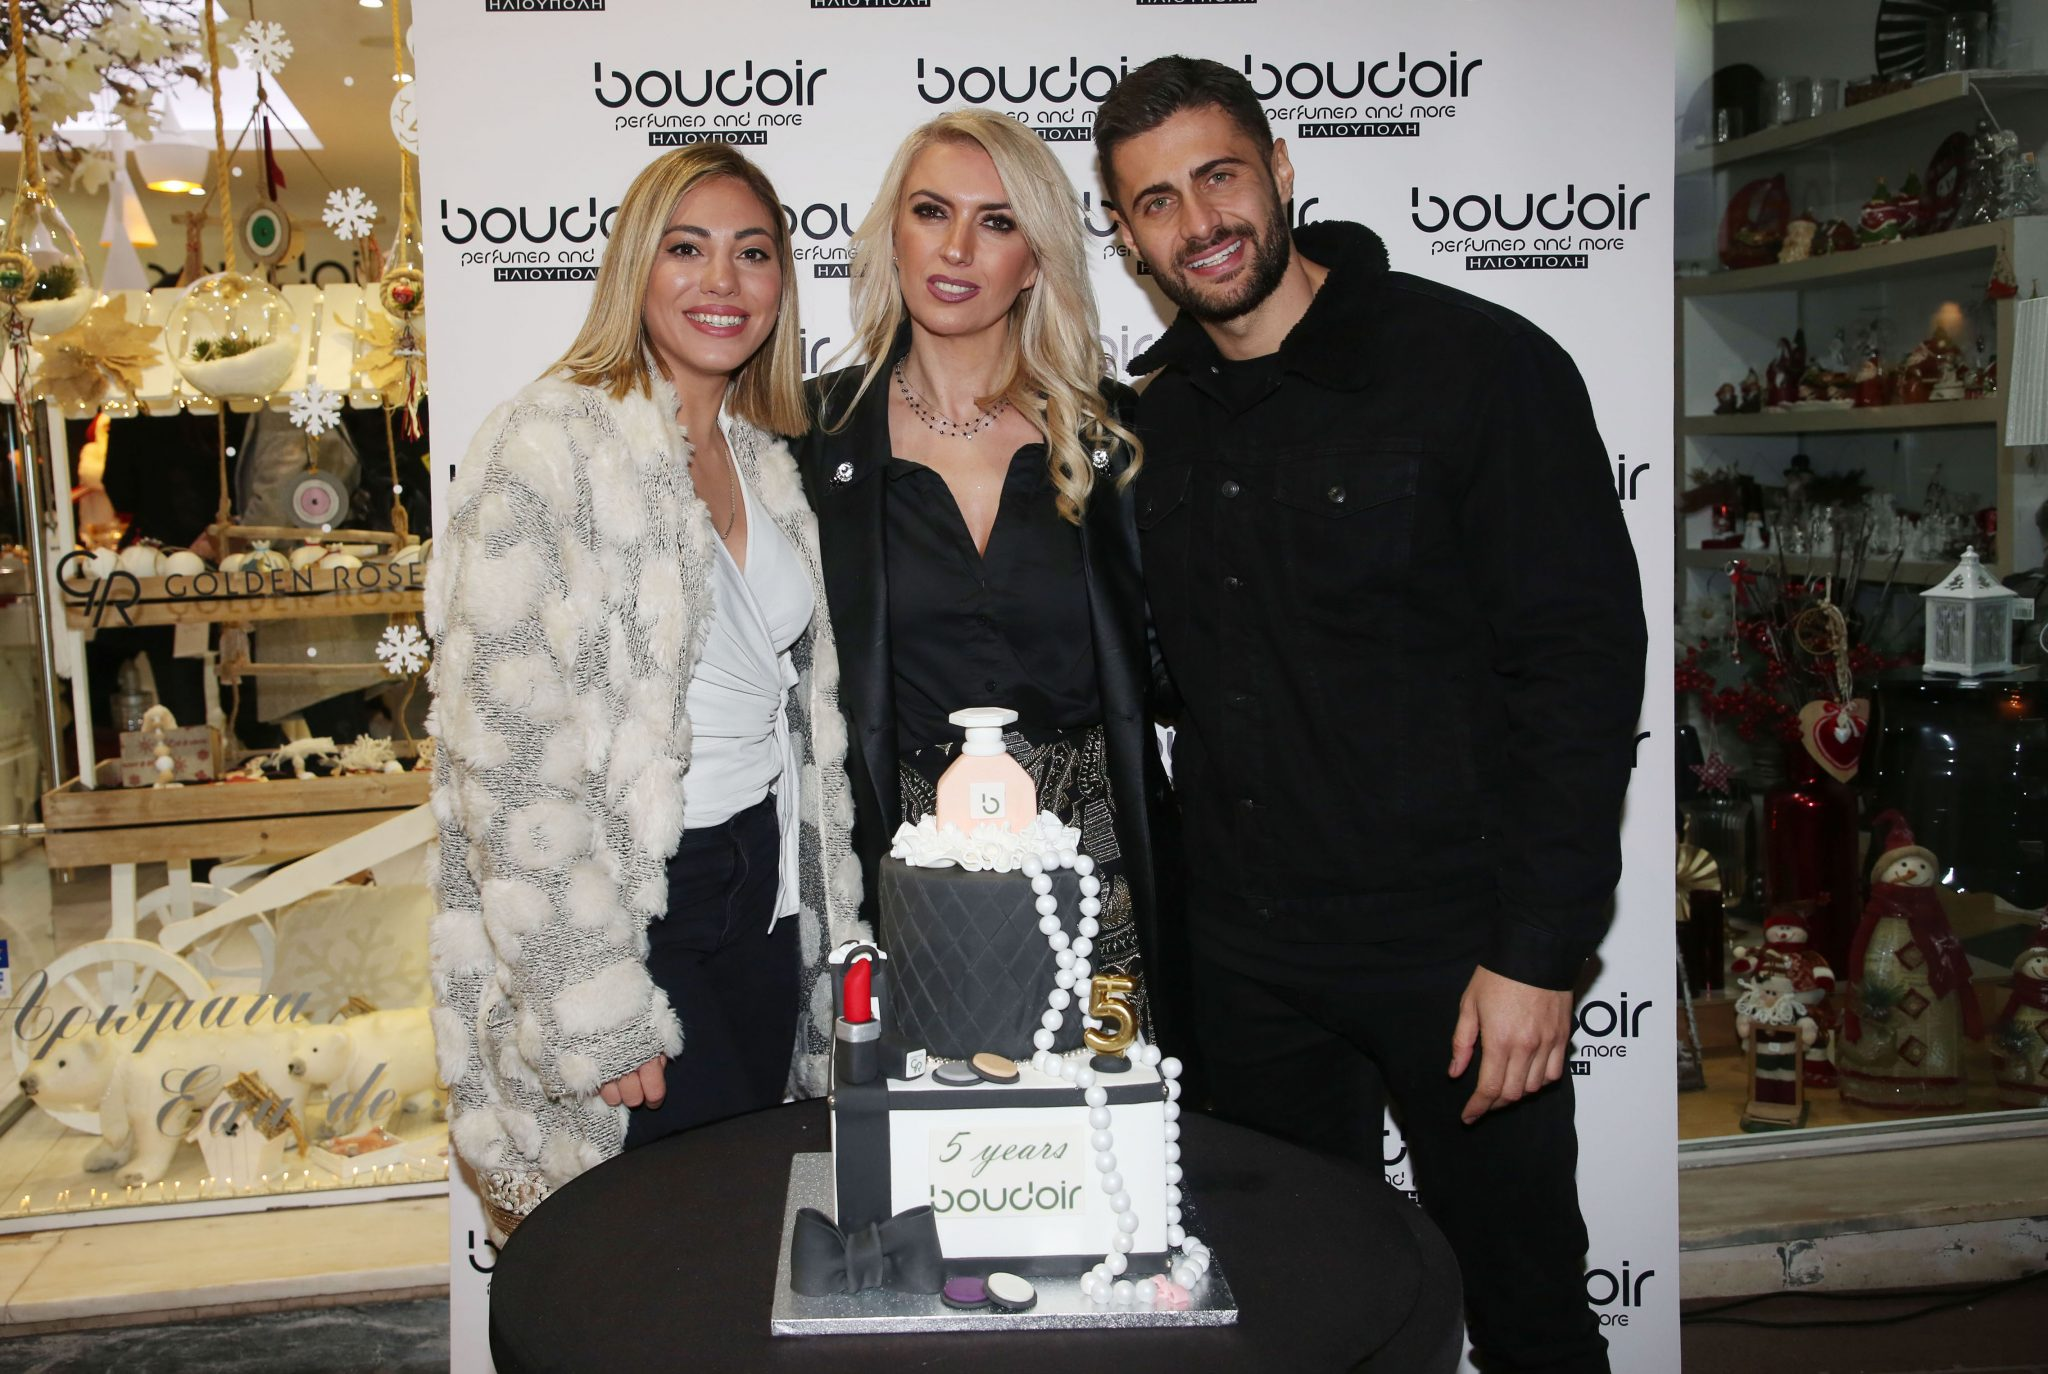 """The 5th anniversary party of """"Boudoir perfumes by Anastazia"""" in Ilioupoli was a great success!"""